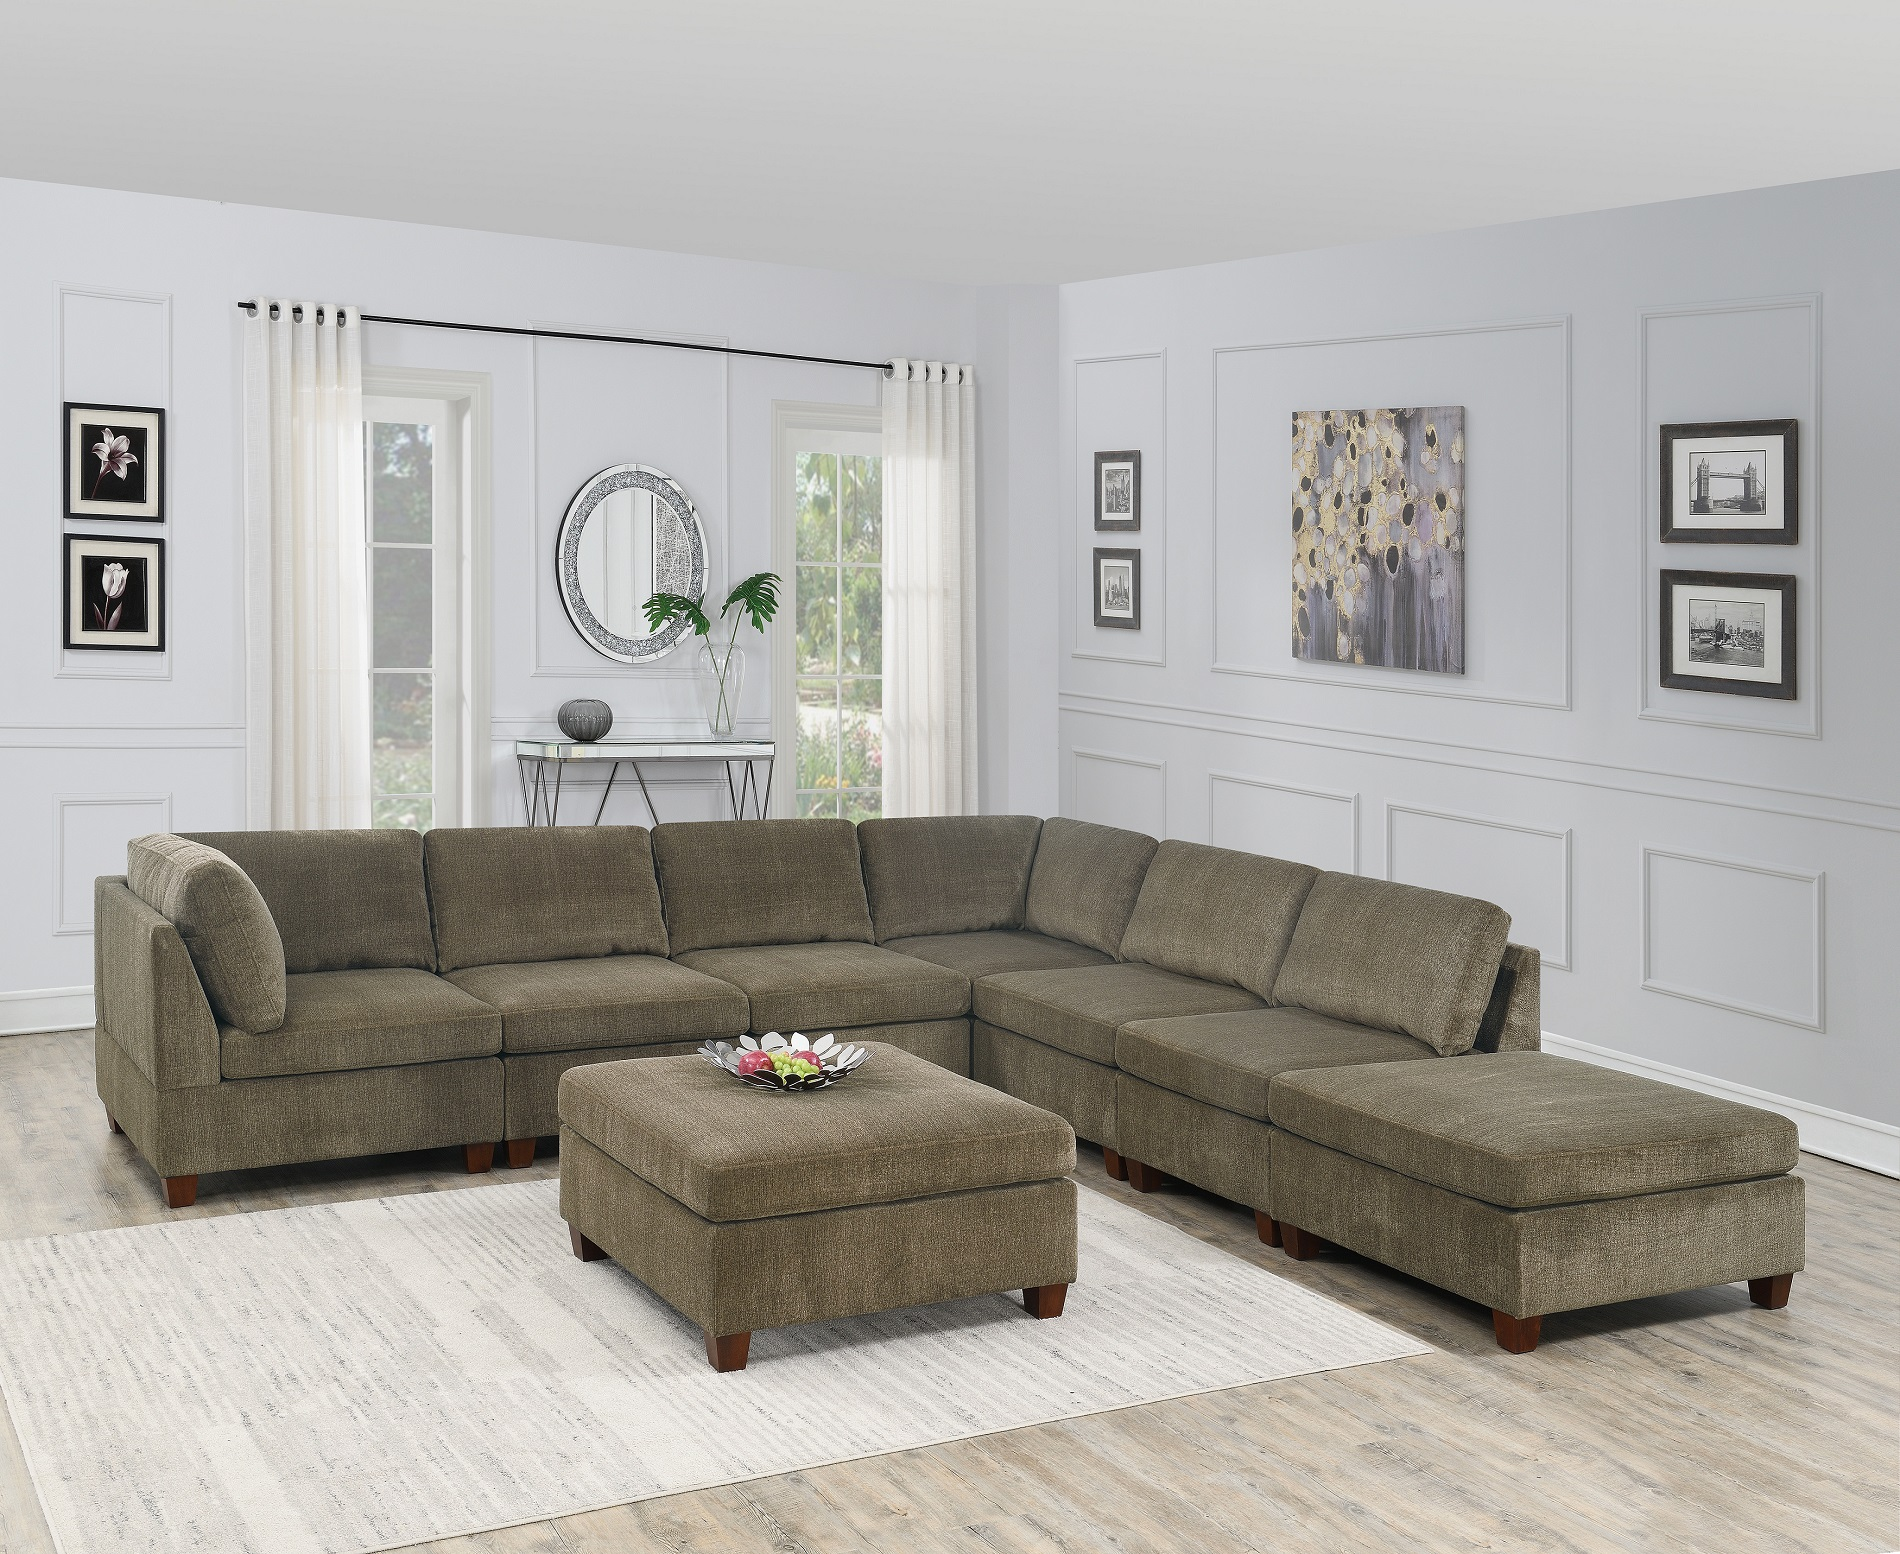 Contemporary Modern Unique Modular 8pc Sectional Sofa Set Tan Color Chenille Fabric Wood Legs 2 X Corner Wedge 4x Armless Chairs And 2 X Ottoman Walmart Com Walmart Com